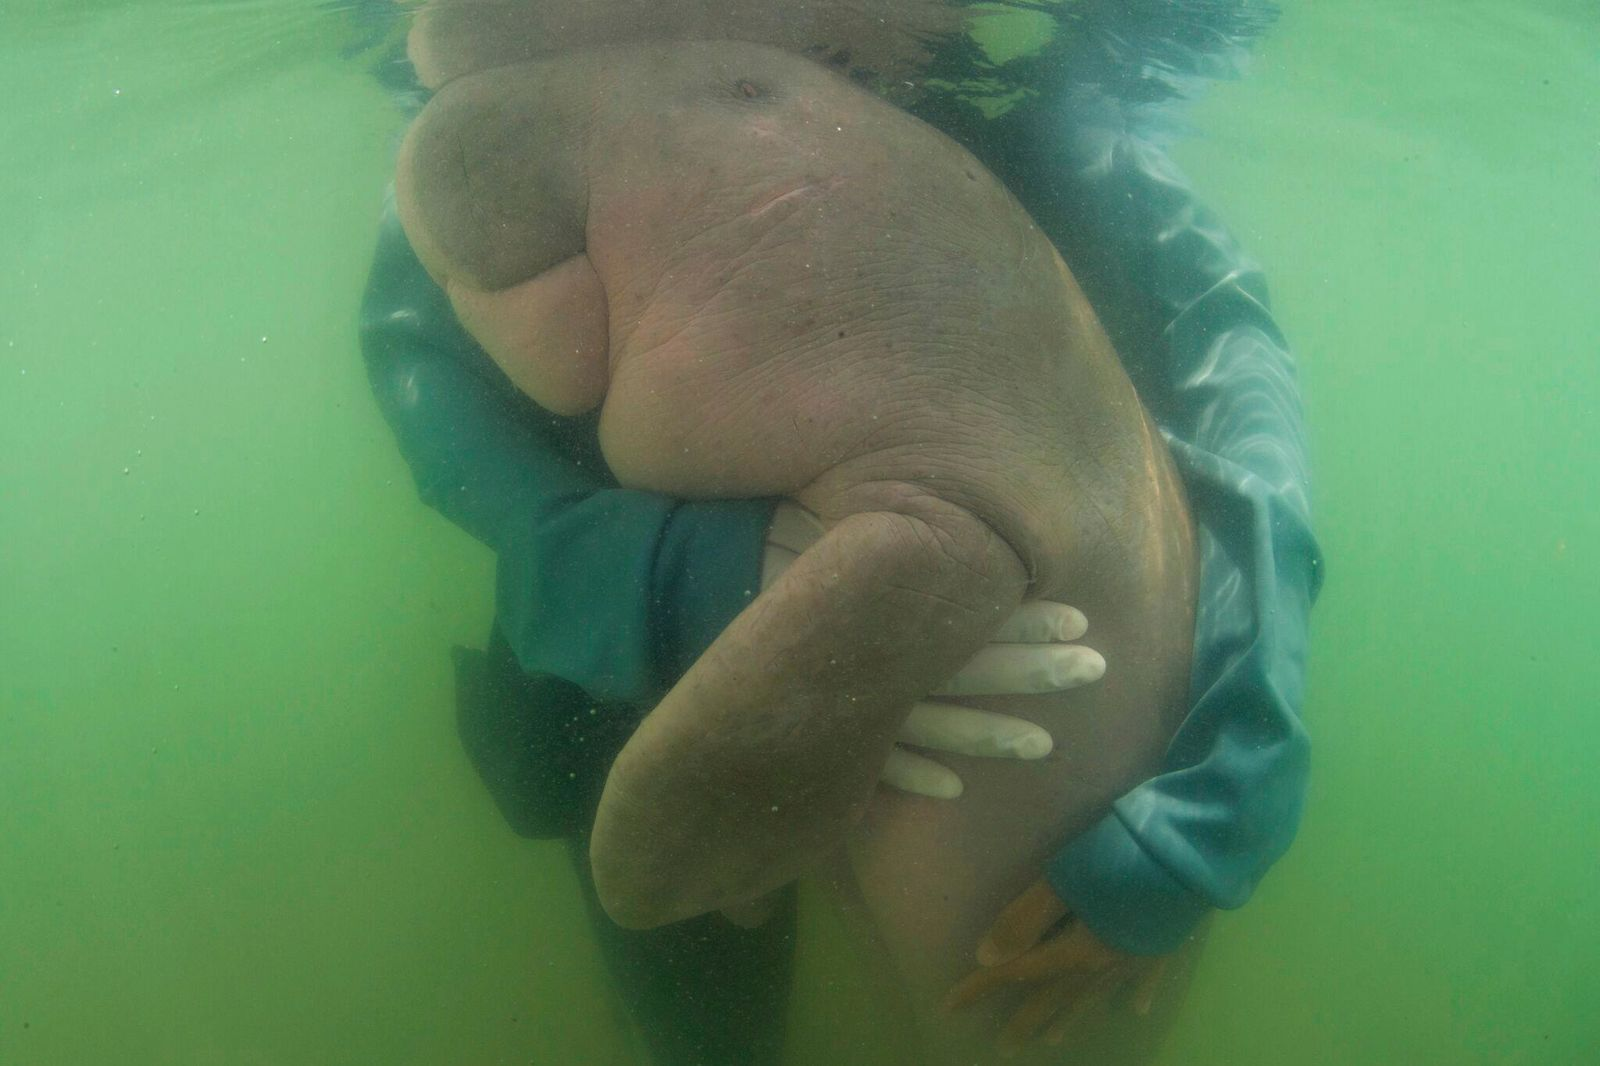 FILE - In this May 23, 2019, photo, an official of the Department of Marine and Coastal Resources, hugs Marium, baby dugong lost from her mom Libong island, Trang province southern Thailand. The 8-month-old dugong nurtured by marine experts after it was found near a beach in southern Thailand has died of what biologists believe was a combination of shock and ingesting plastic waste. The female dugong - a large ocean mammal - became a hit in Thailand after images of biologists embracing and feeding her with milk and sea grass spread across social media. Last week, she was found bruised after being chased and supposedly attacked by a male dugong during the mating season. (Sirachai Arunrugstichai via AP, File)